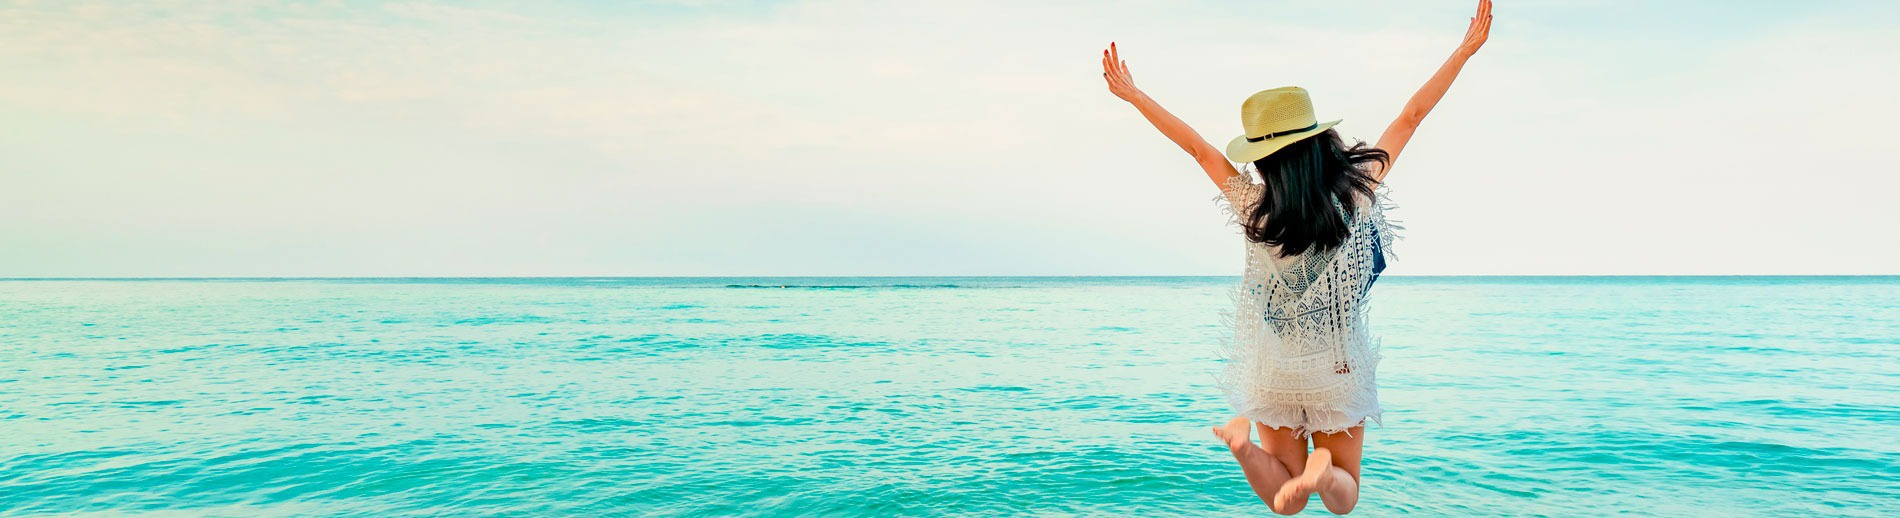 Person with hands up on the beach